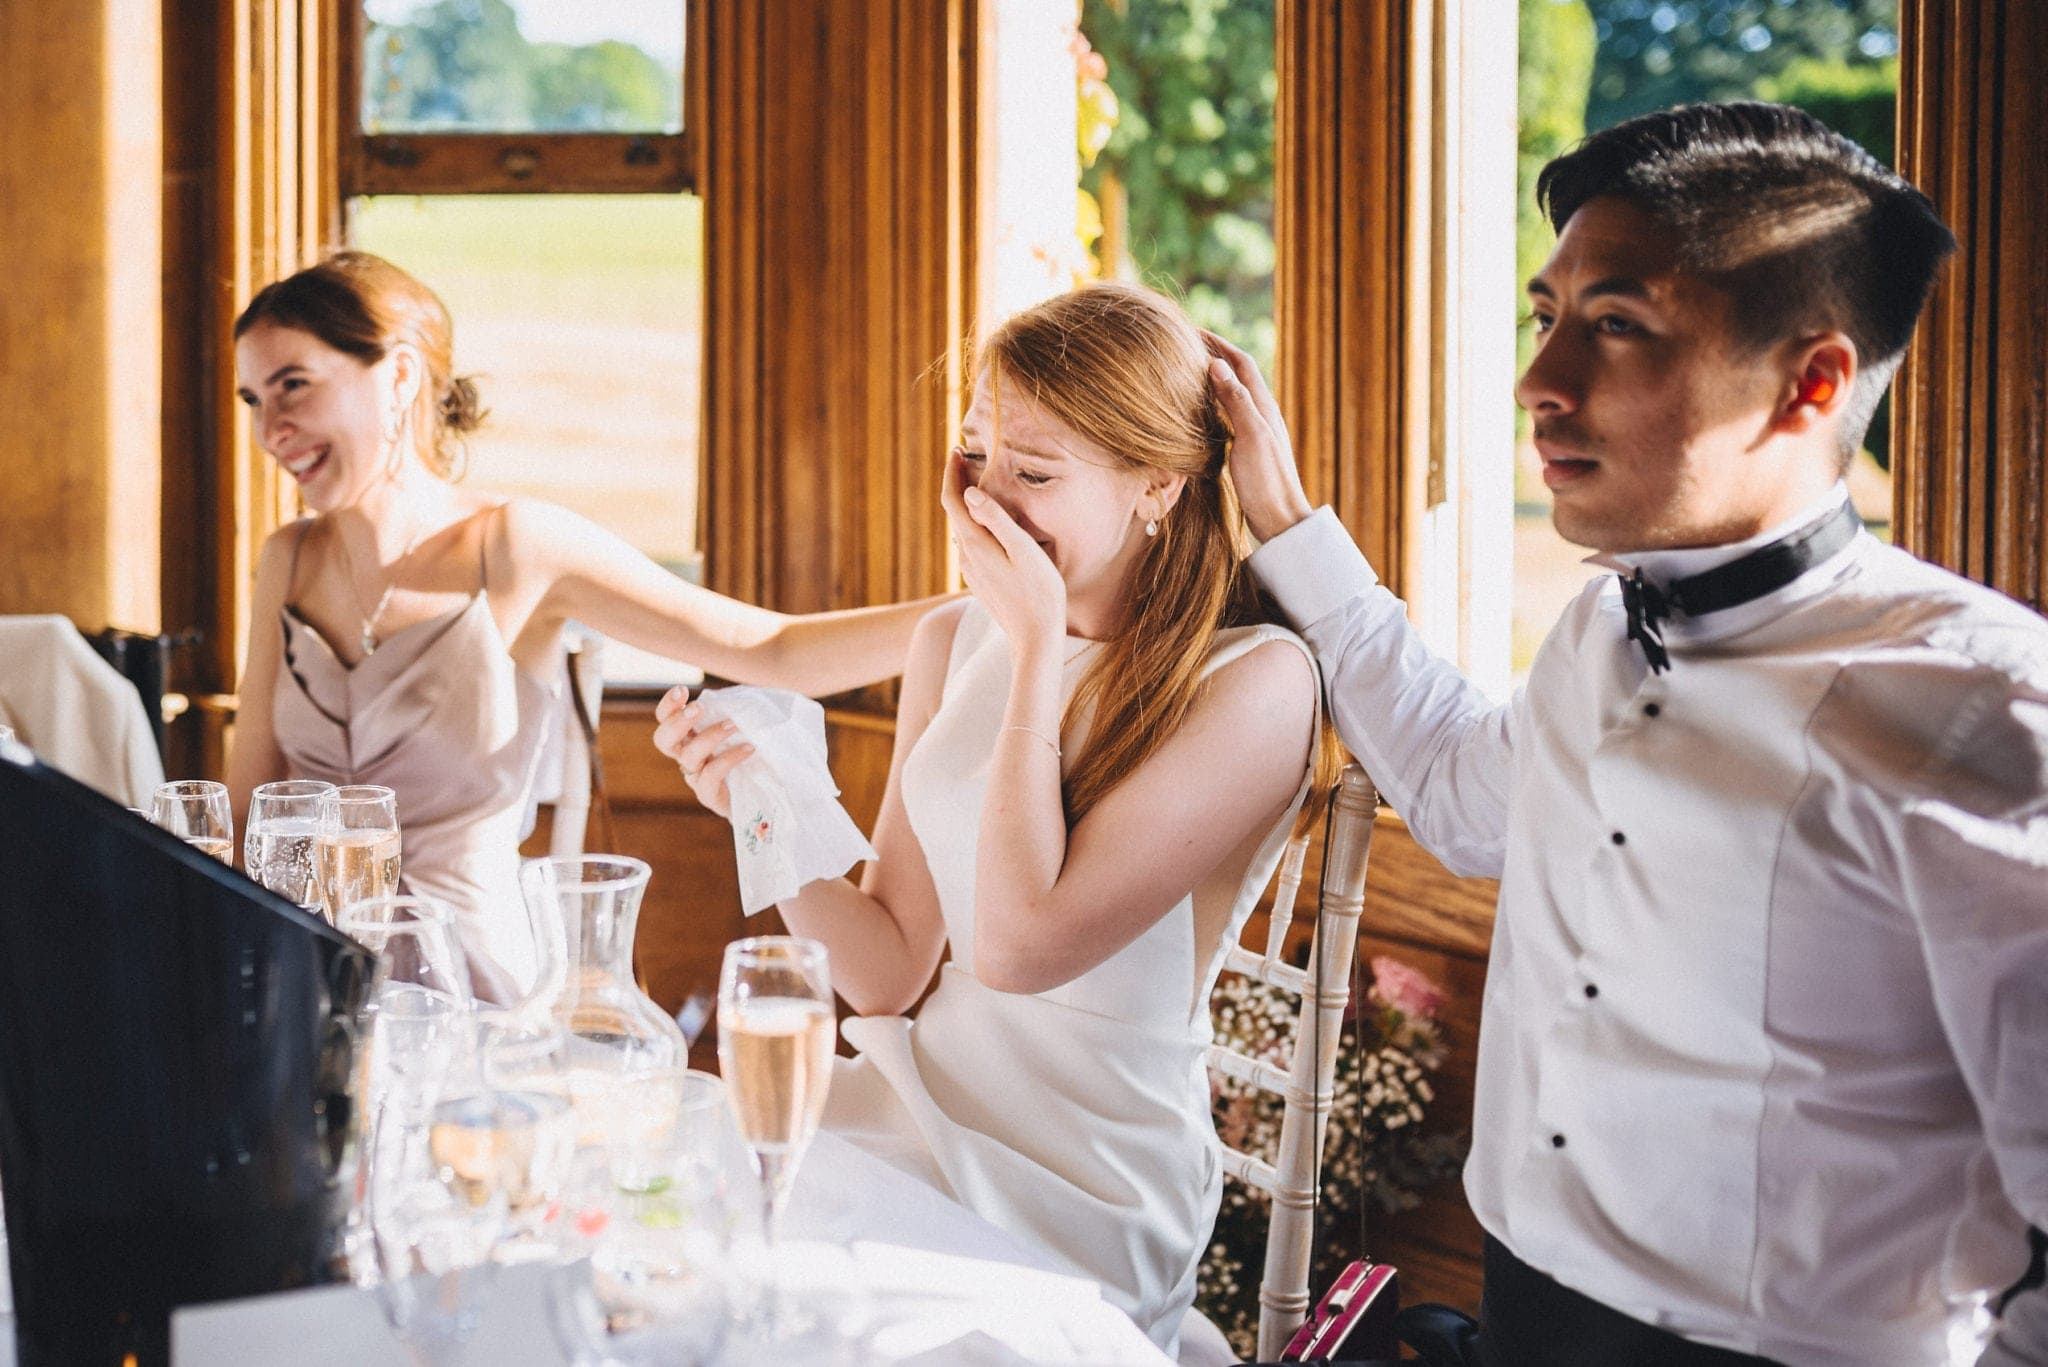 Groom strokes bride's hair as she cries during wedding speeches